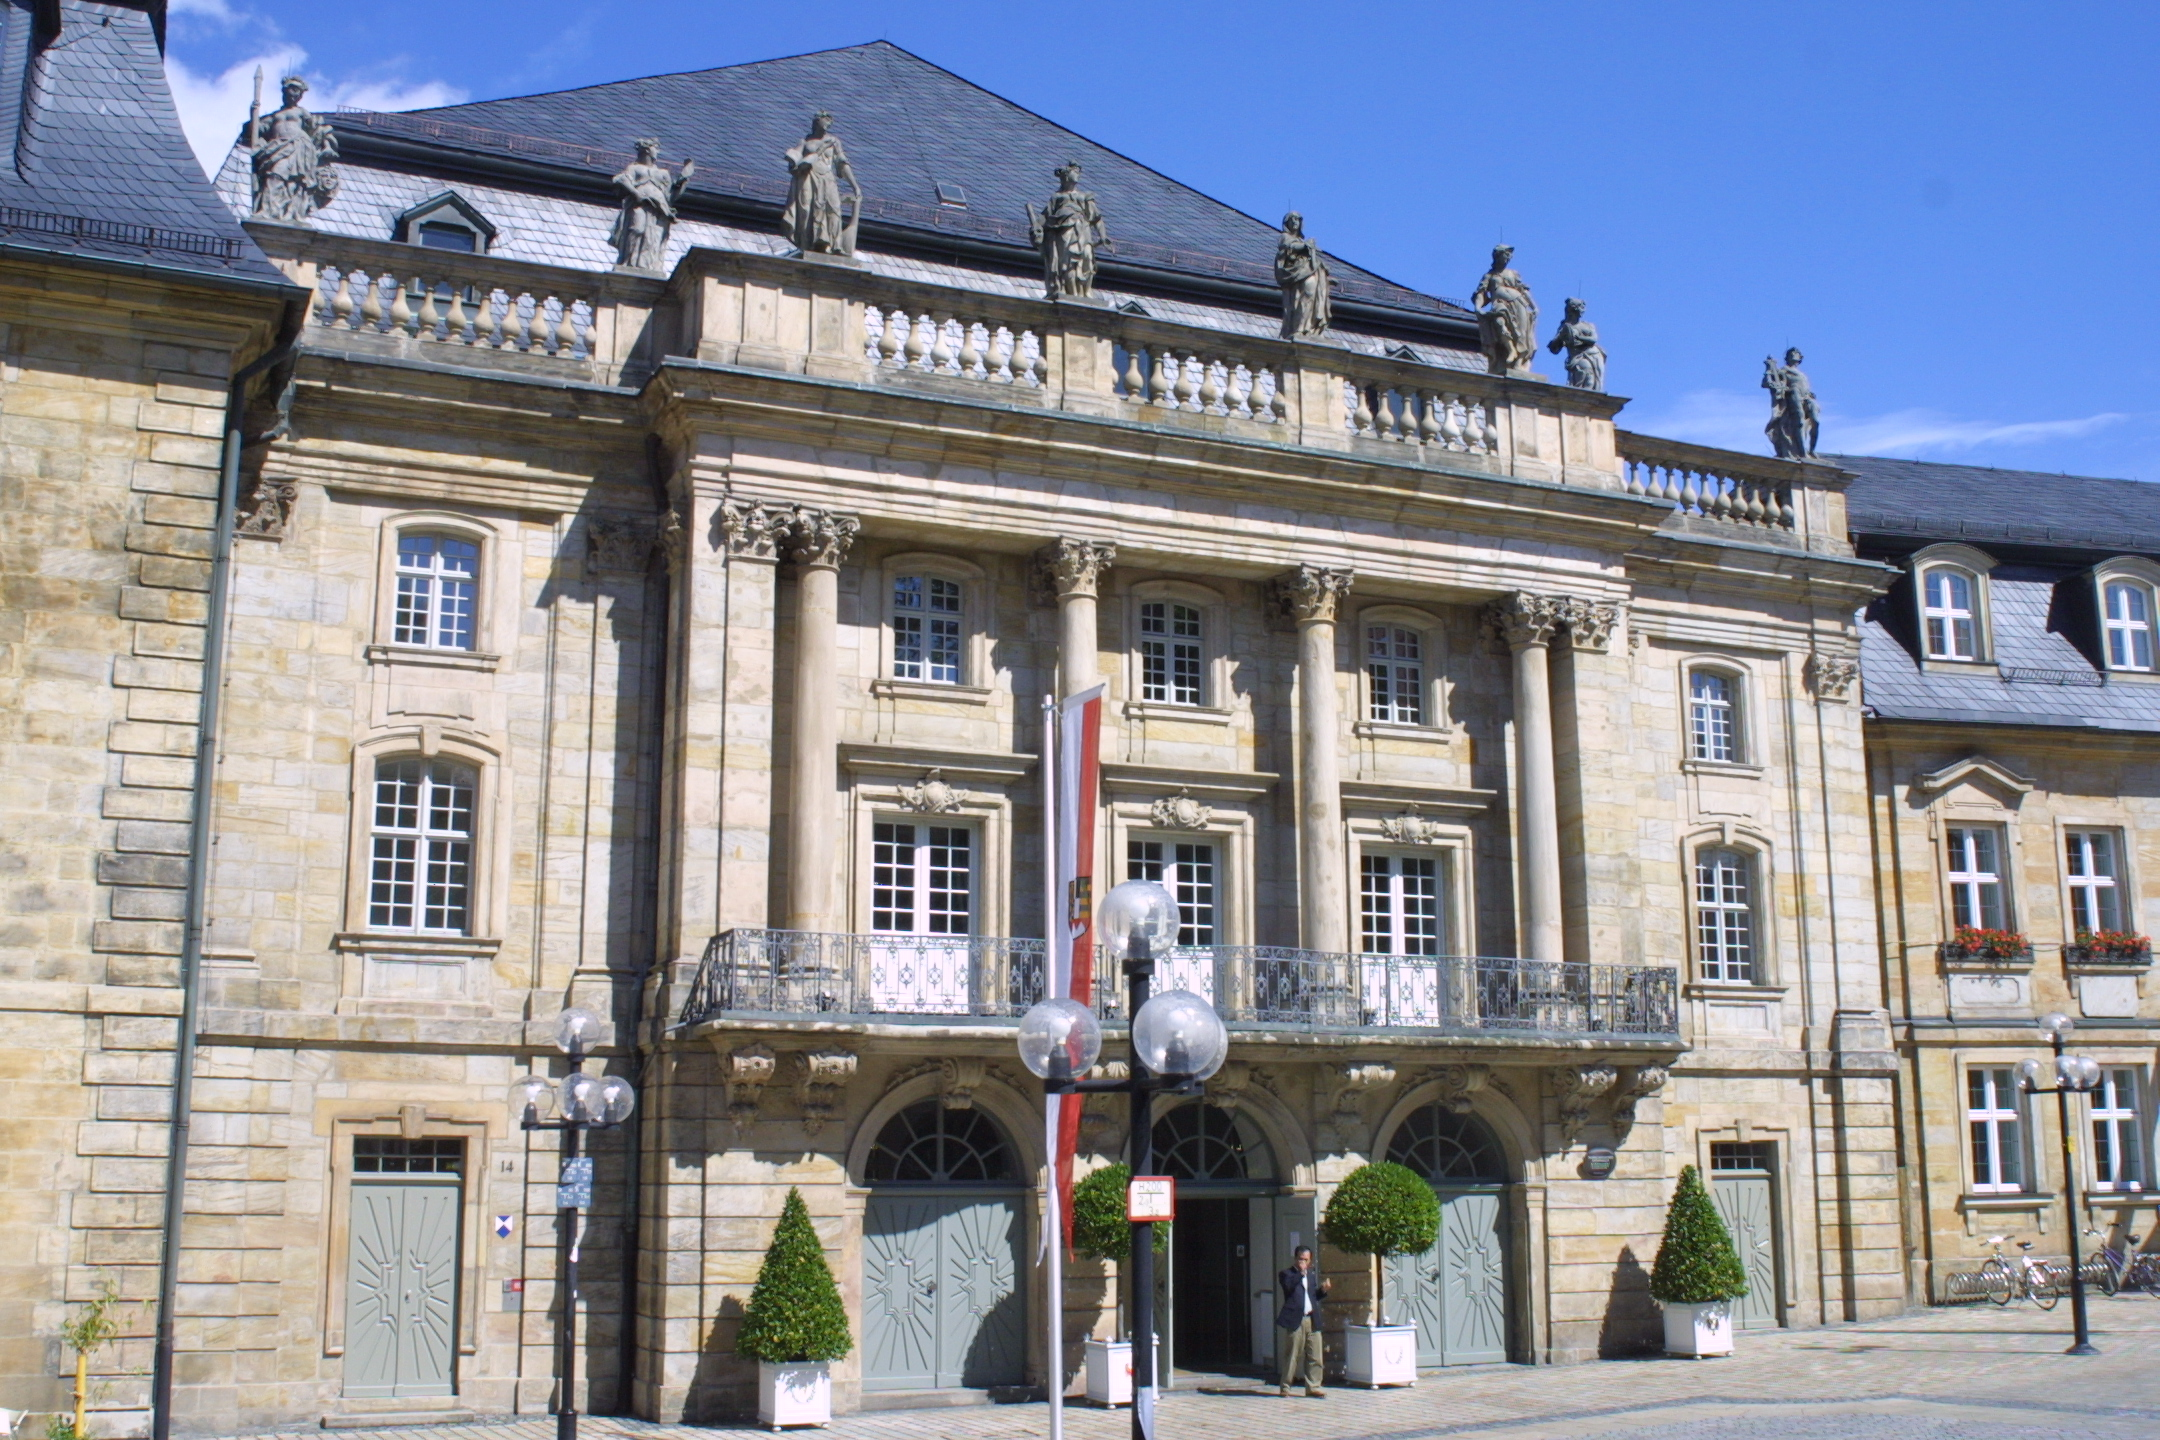 https://upload.wikimedia.org/wikipedia/commons/5/53/Bayreuth_Fassade.jpg